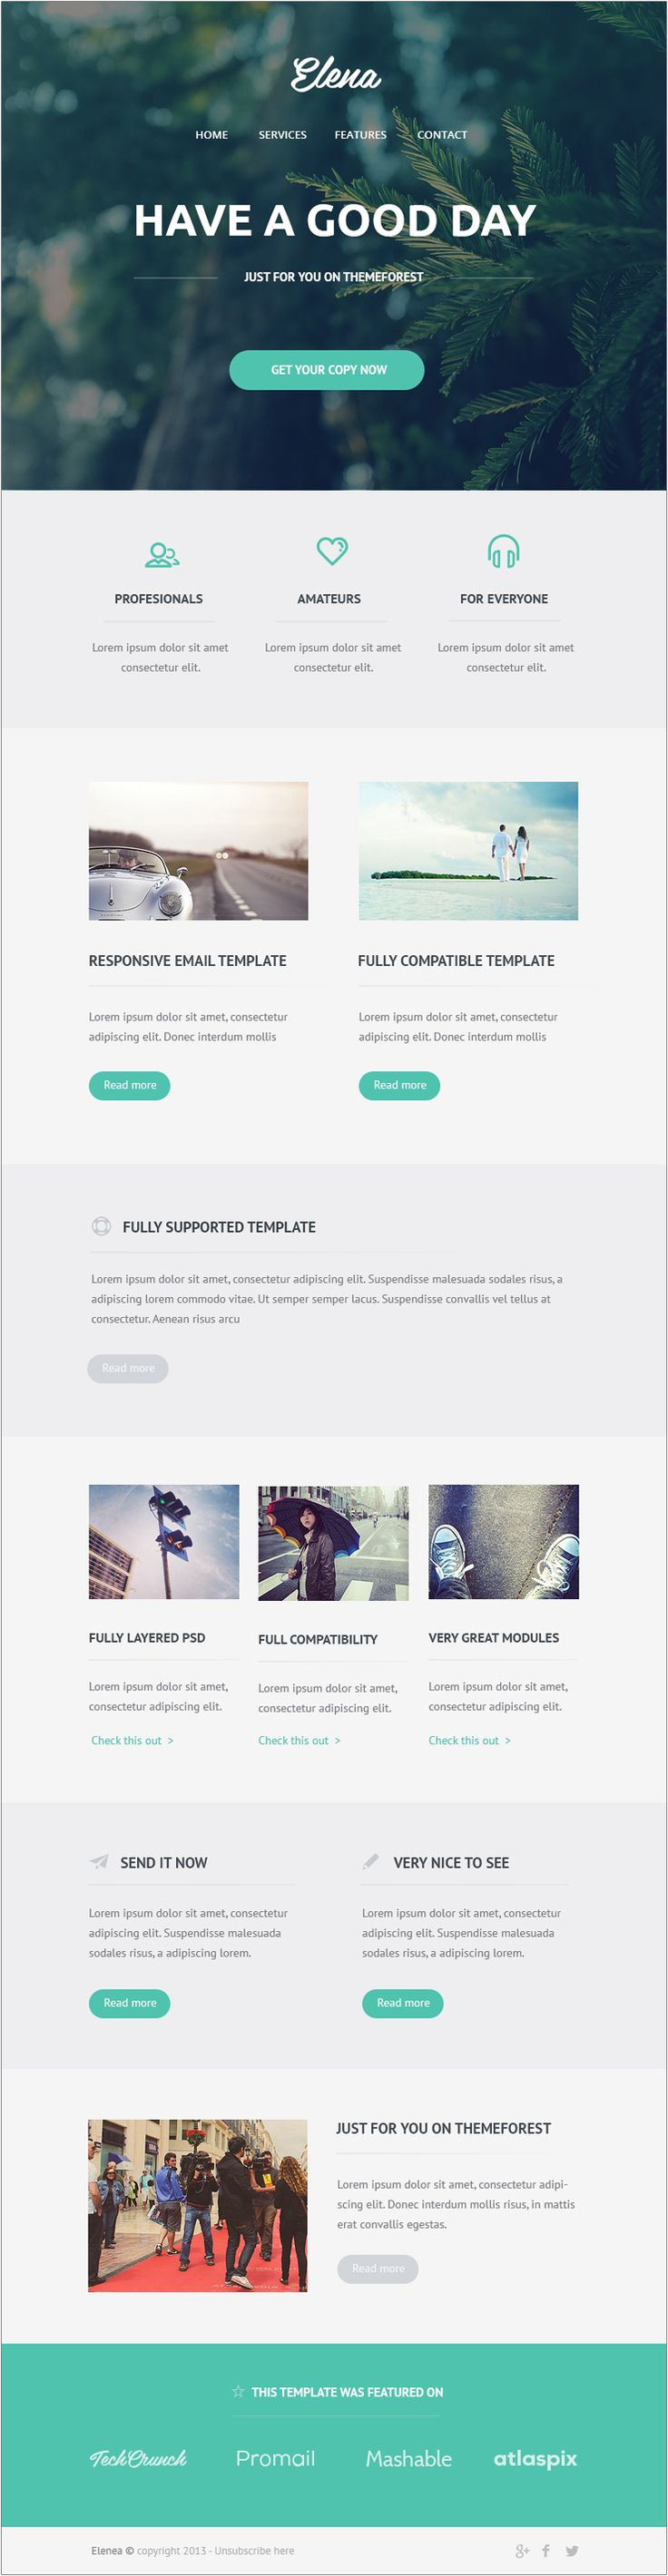 Free Email Newsletter Templates PSD #design #template